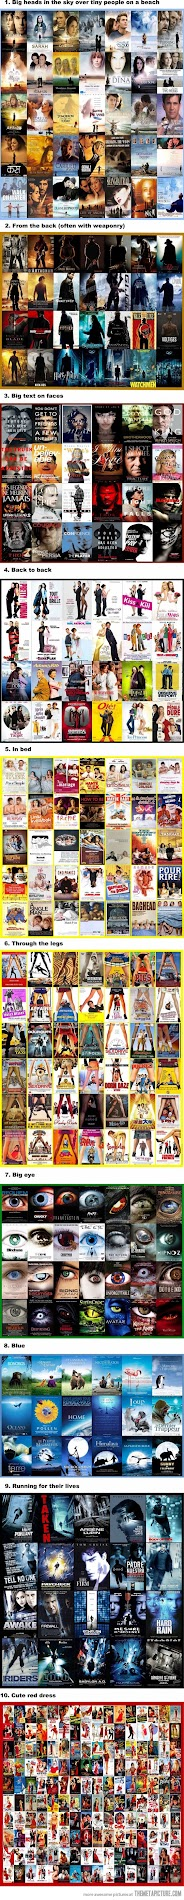 movie poster cliches